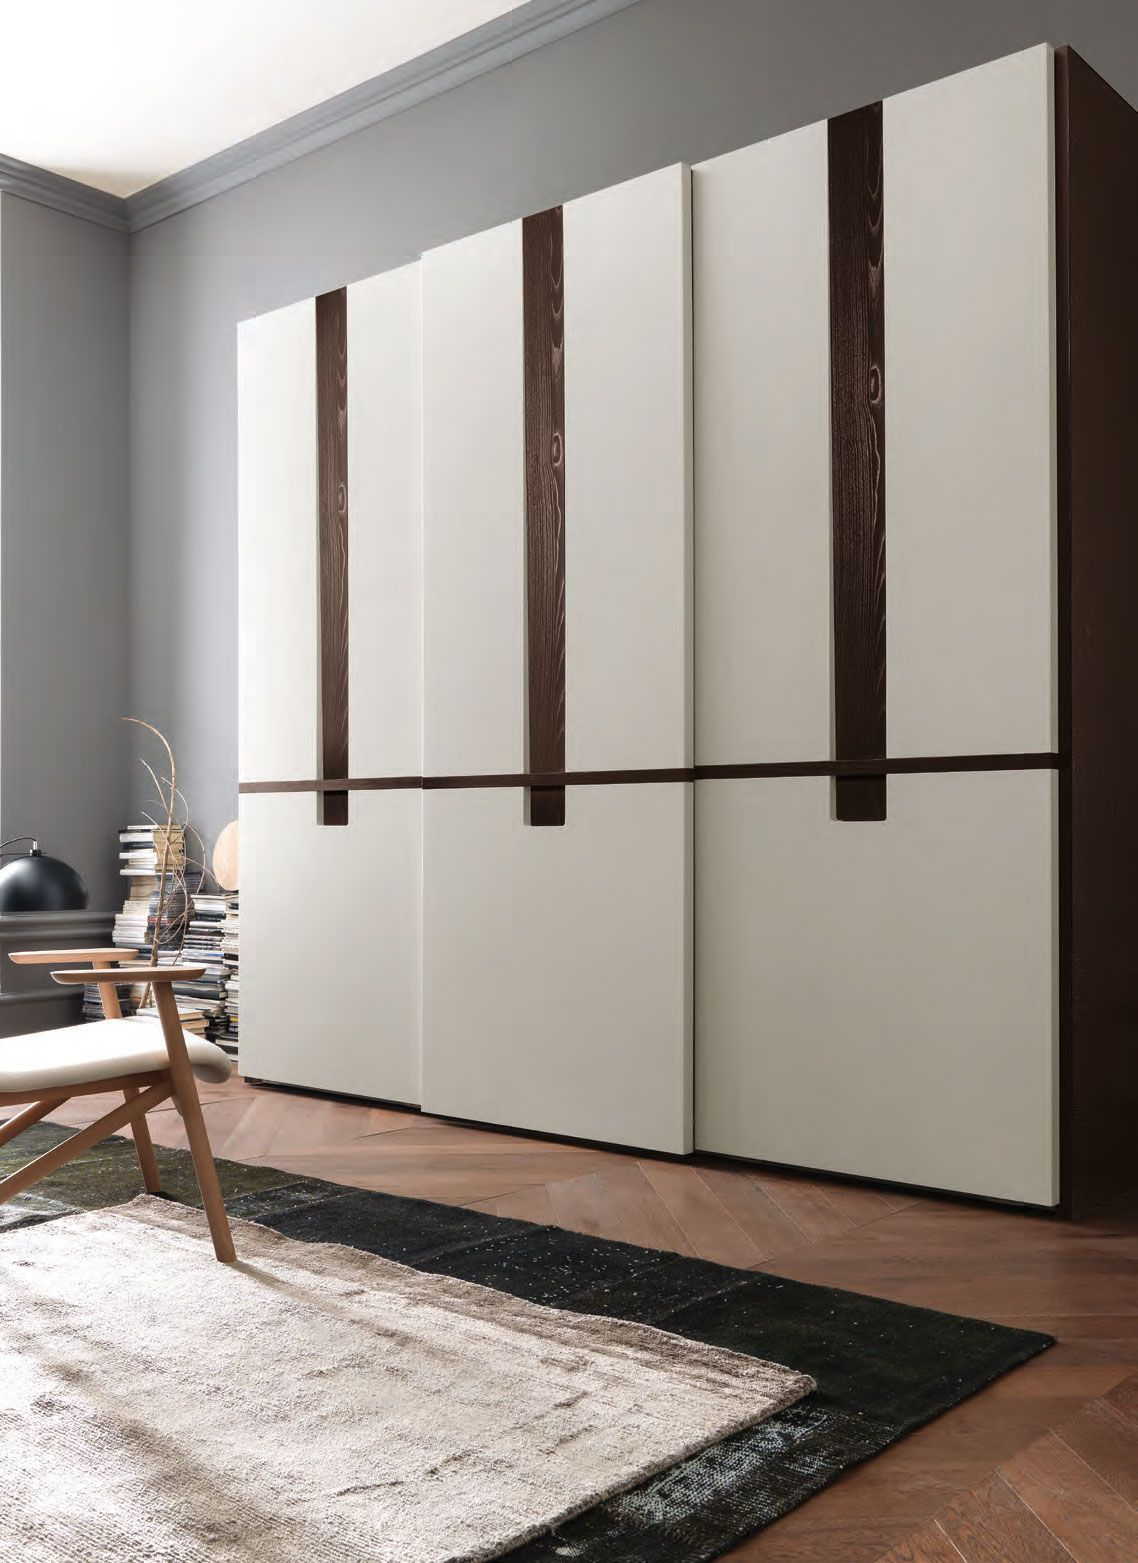 Furniture Design Inspiration 35 modern wardrobe furniture designs | wardrobe furniture, modern